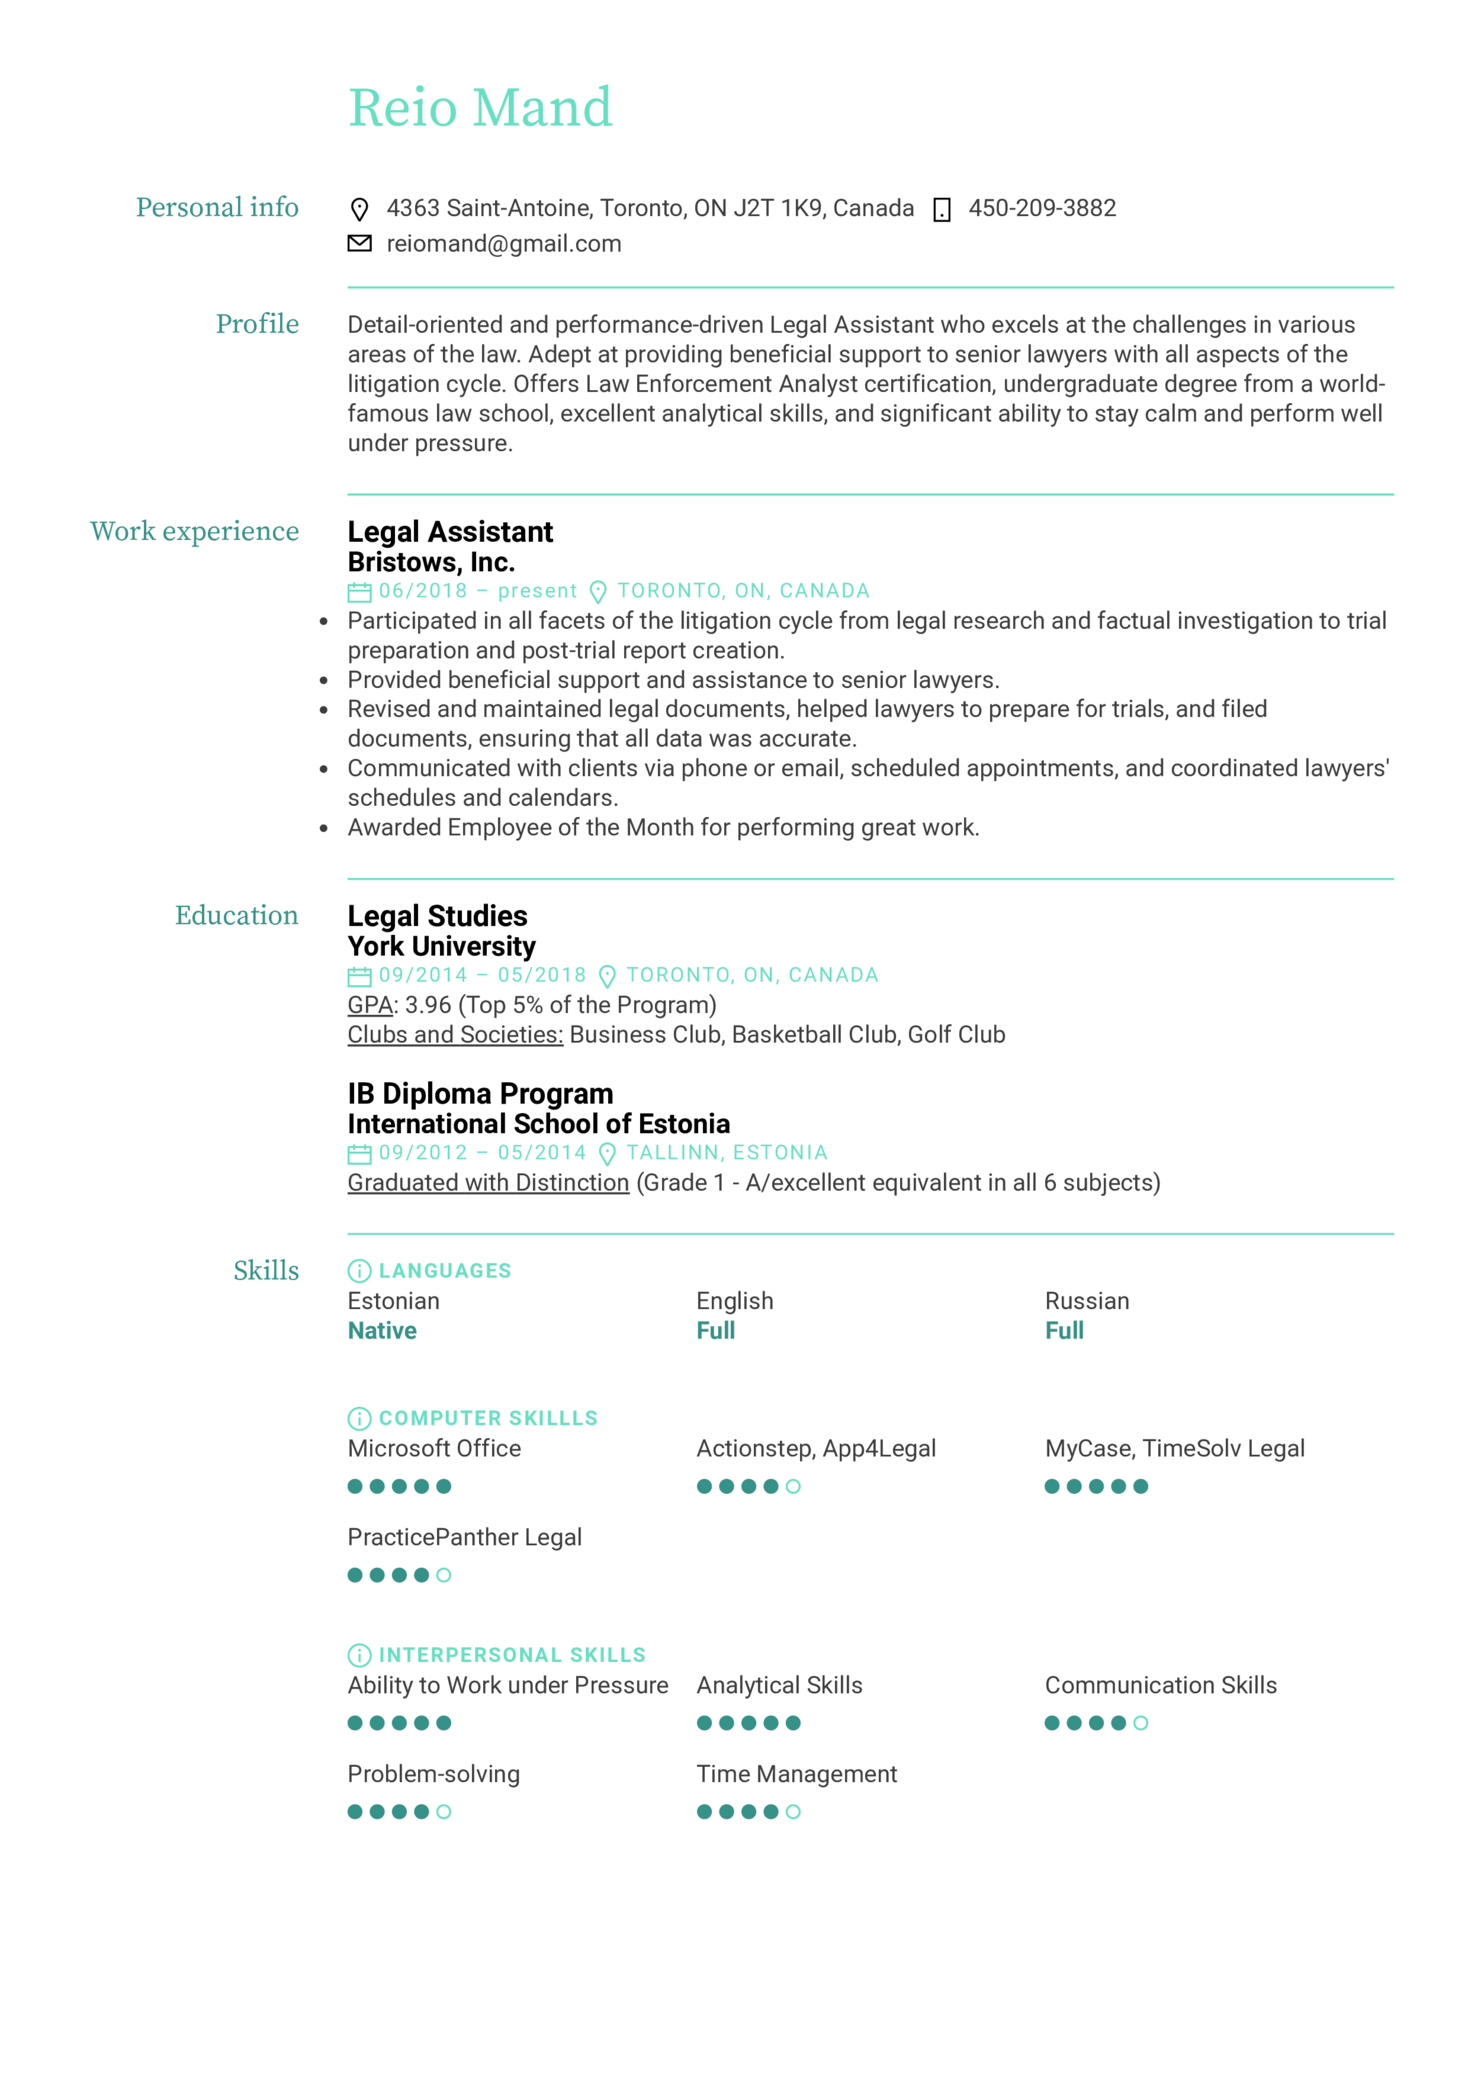 Legal Assistant Resume Example (Part 1)